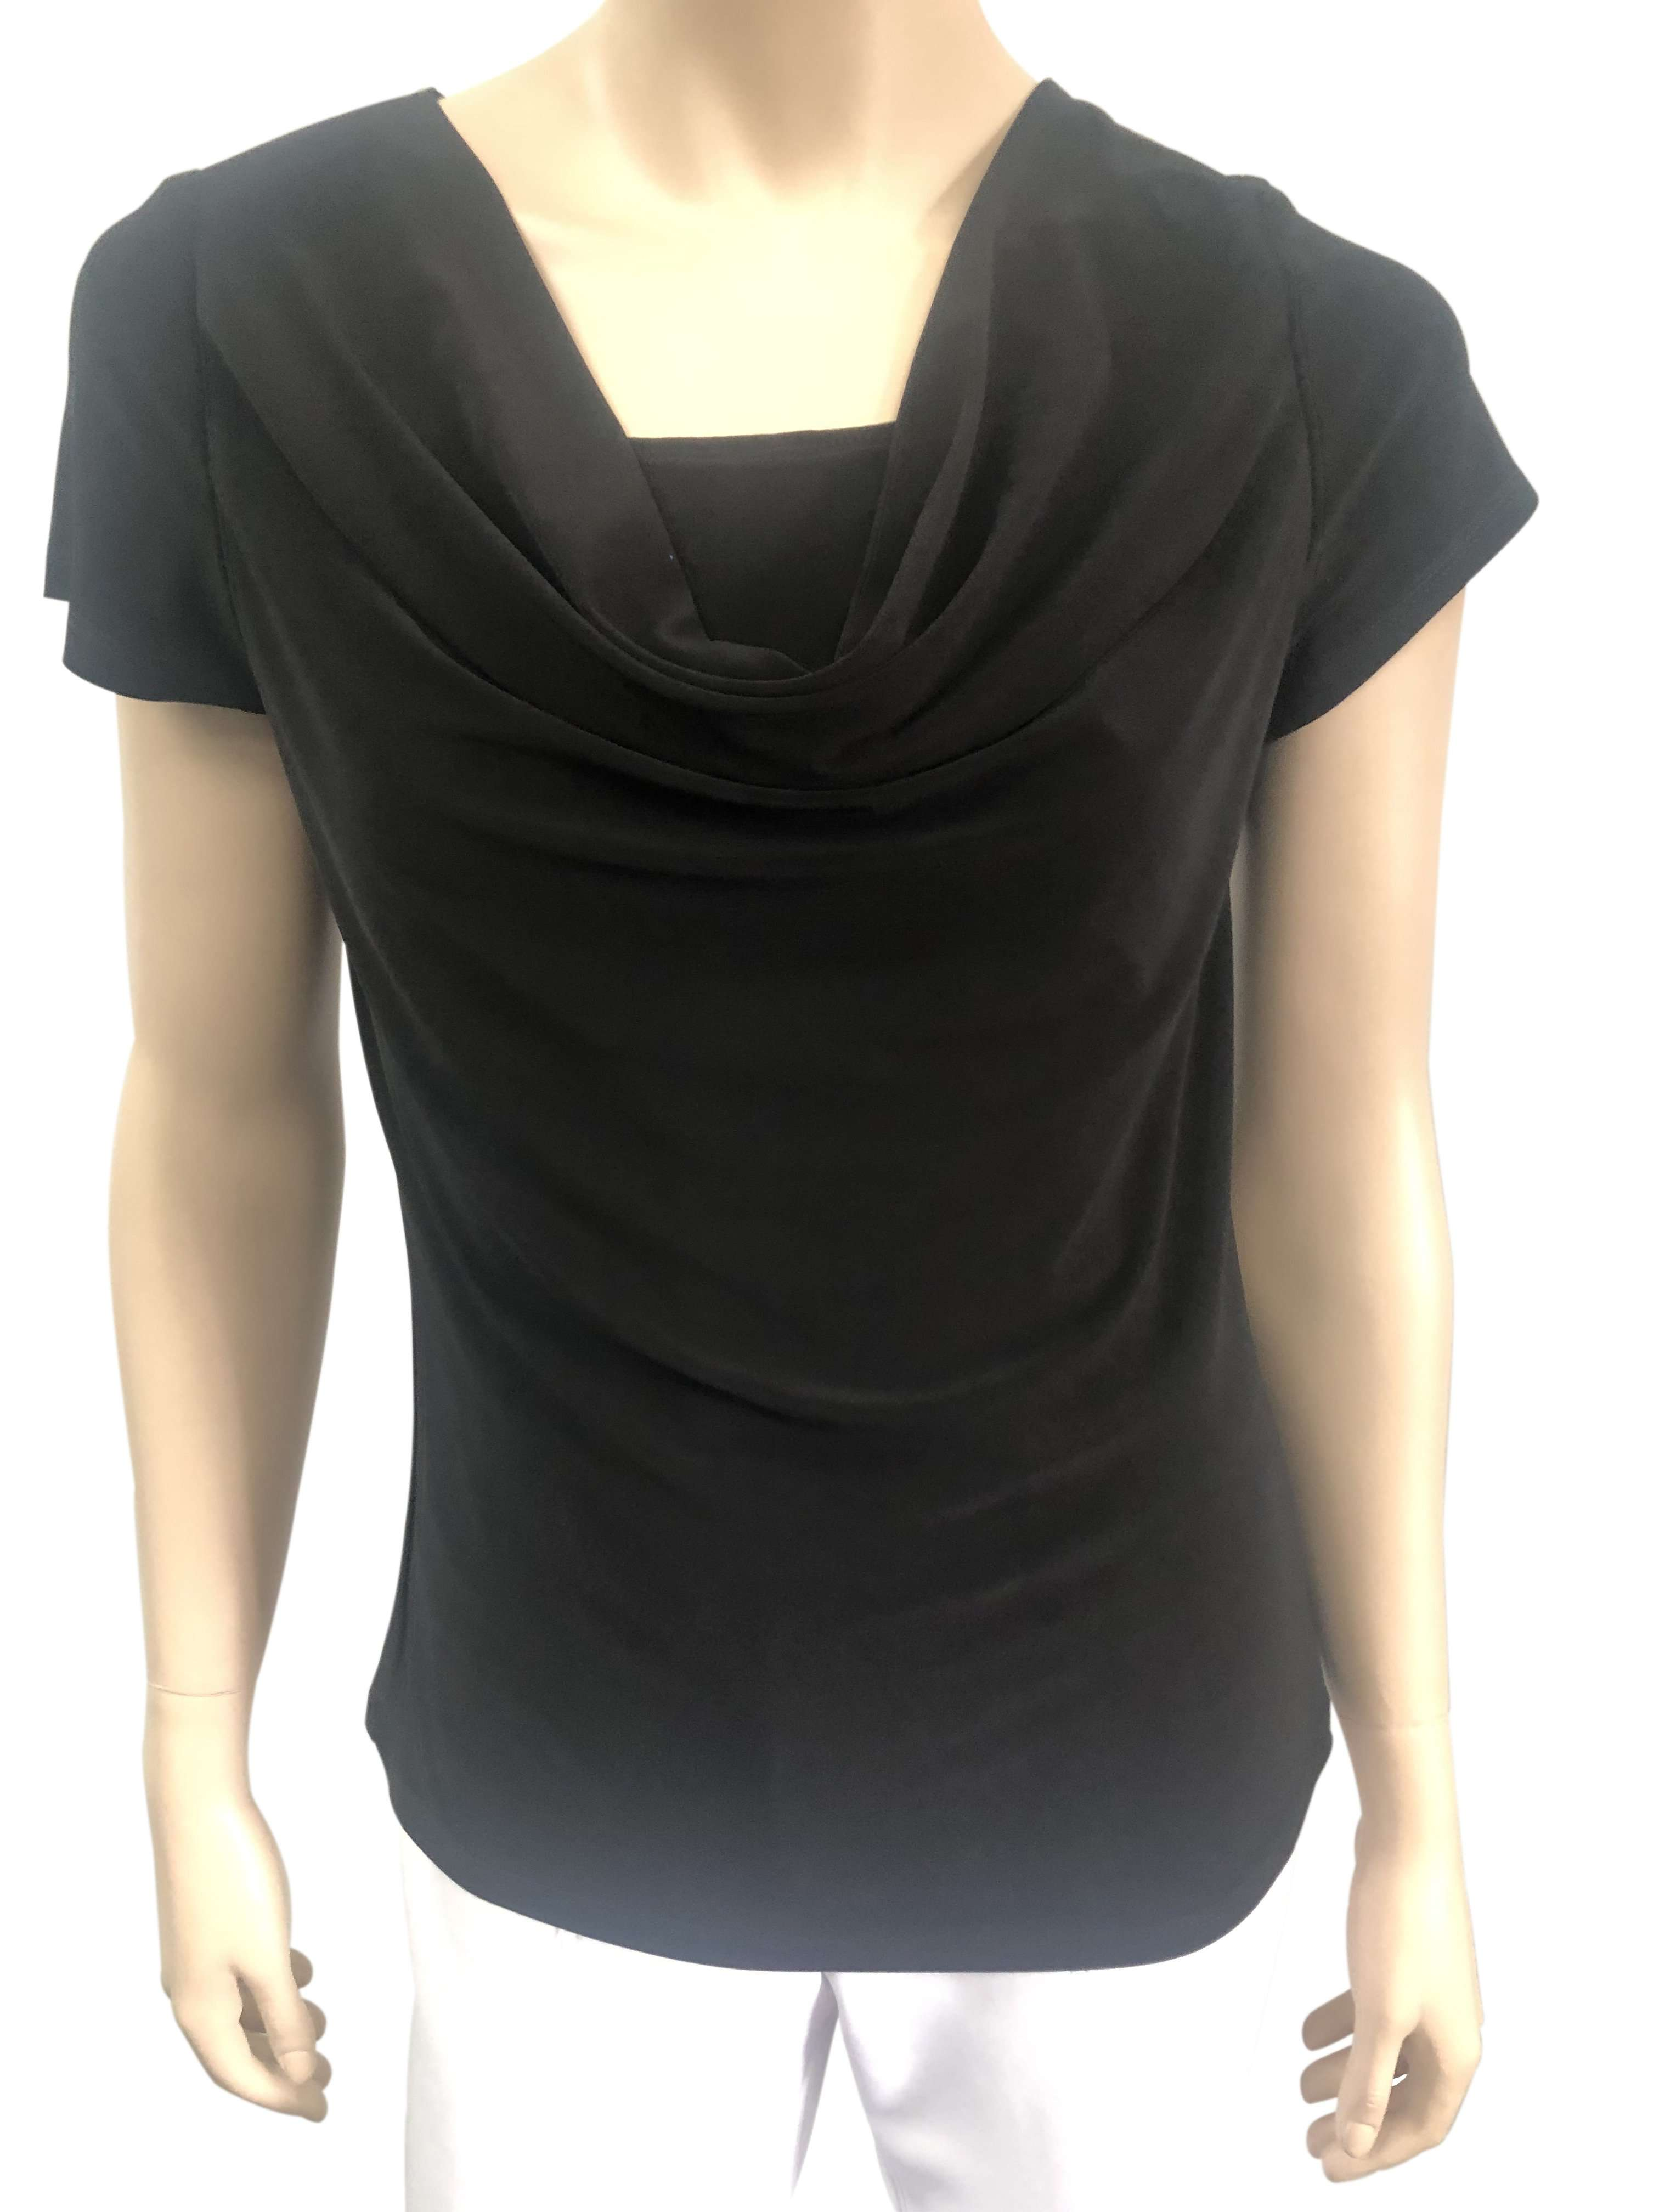 Women's Tops Canada | Black Short Sleeve Top | Clearance Sale | YM Style - Yvonne Marie